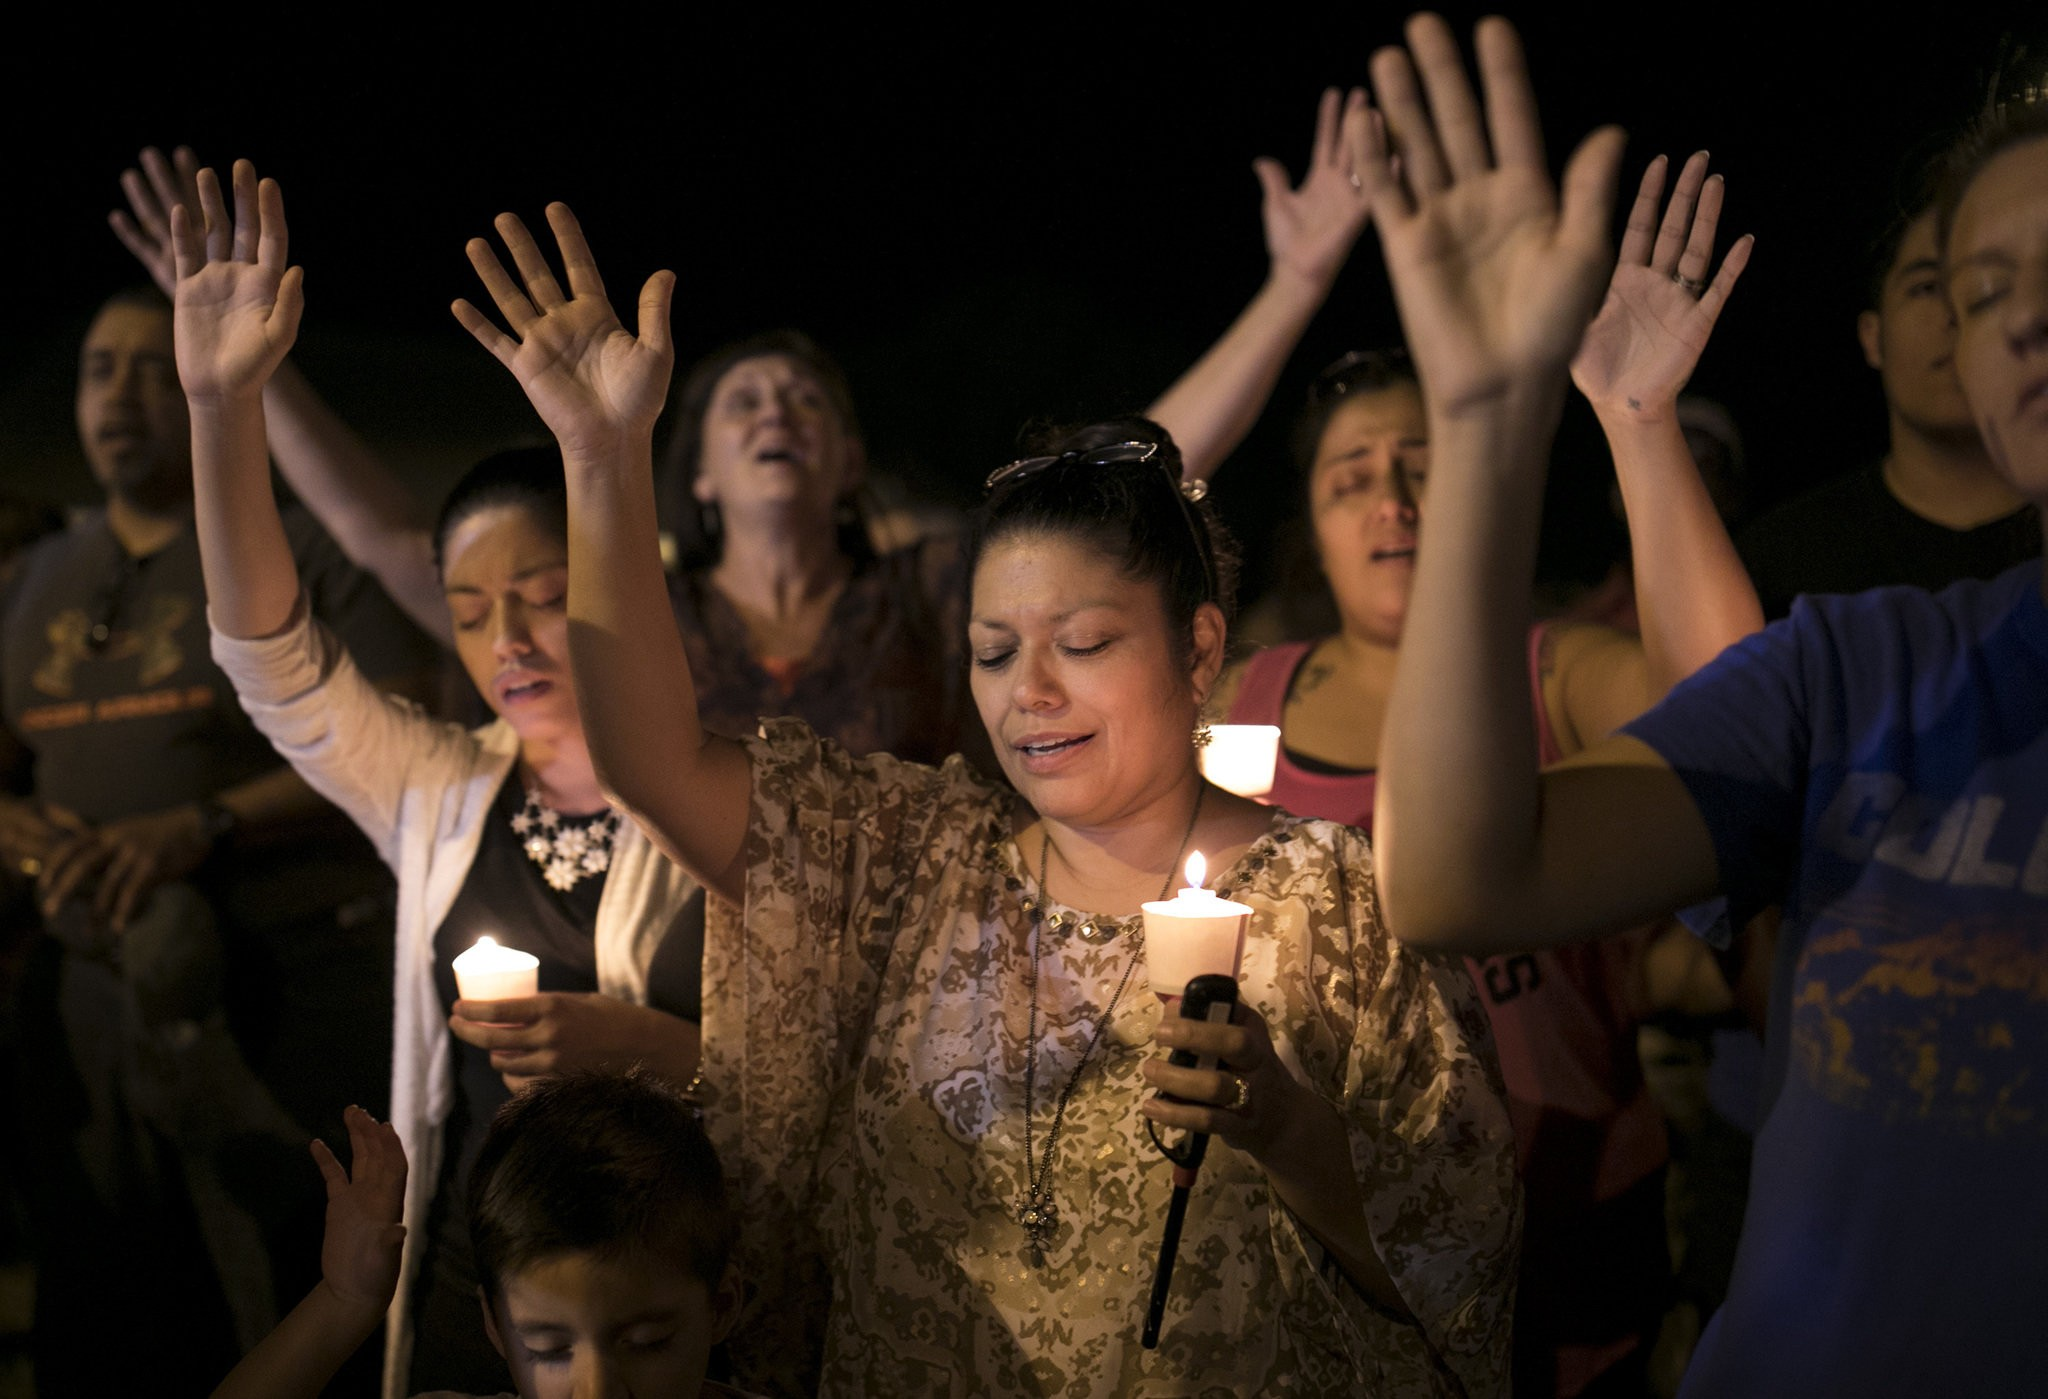 America's church shootings: At least 91 killed since 1999